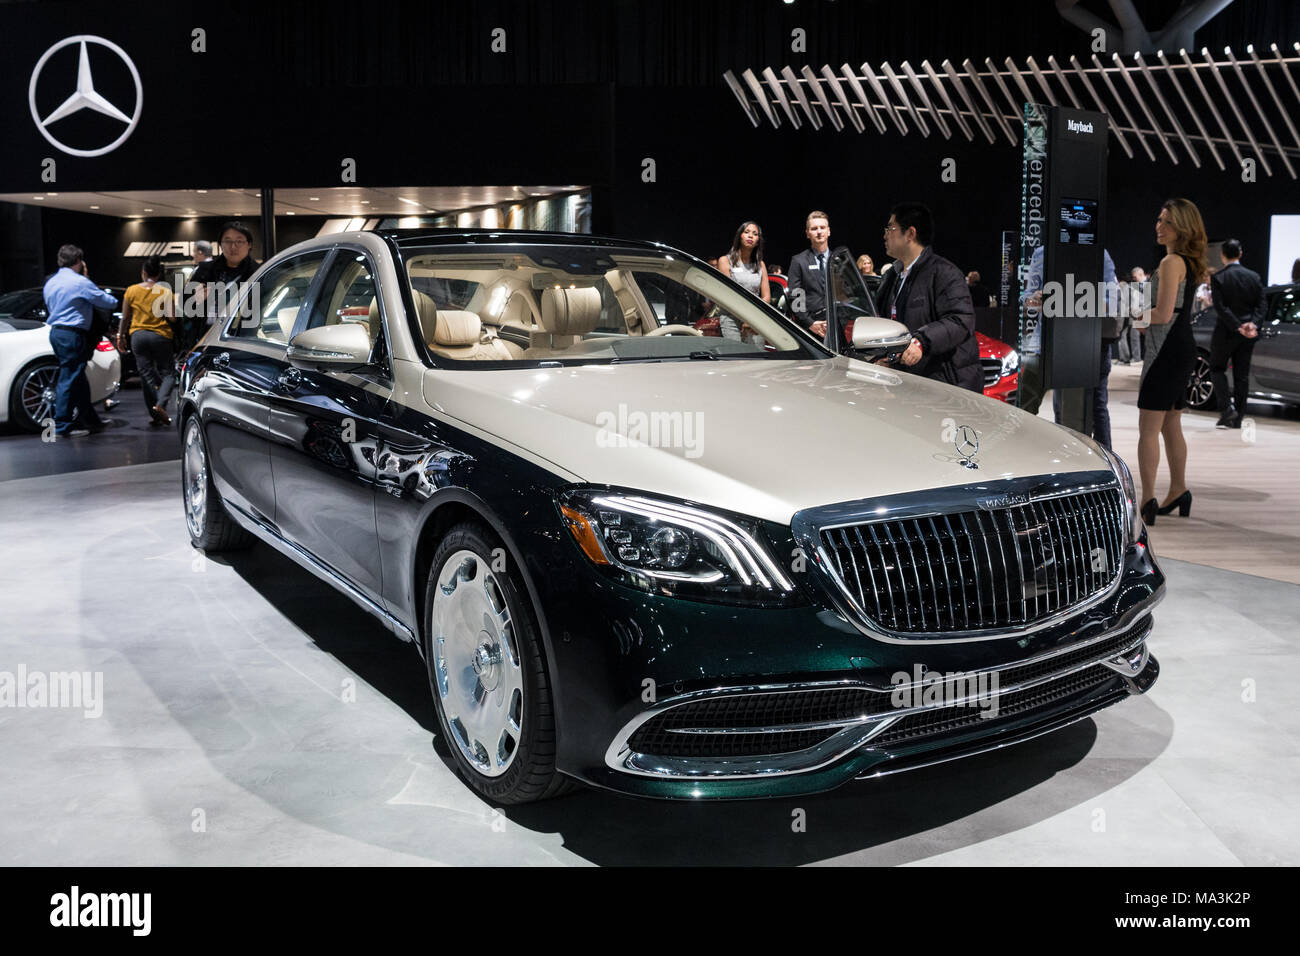 The Maybach S650 By Mercedes Benz At The New York International Auto Show  In New York City. The New York International Motor Show Is Being Hosted In  The ...